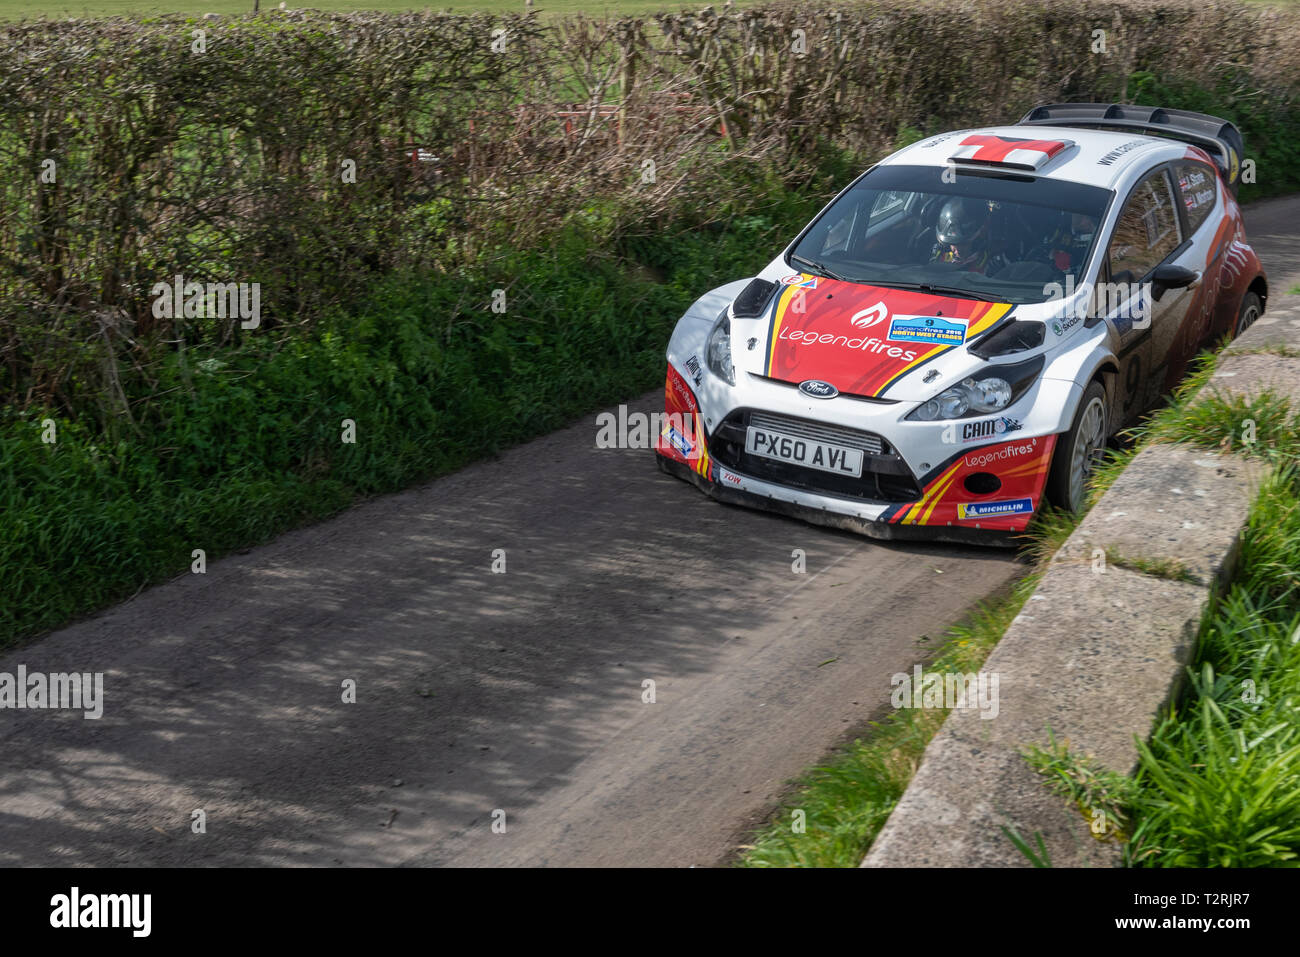 John Stone and his co-driver Jack Morton in their Ford Fiesta WRC at Burrows Lane on the Staynall stage of Legend Fires North West Stages Rally 2 - Stock Image